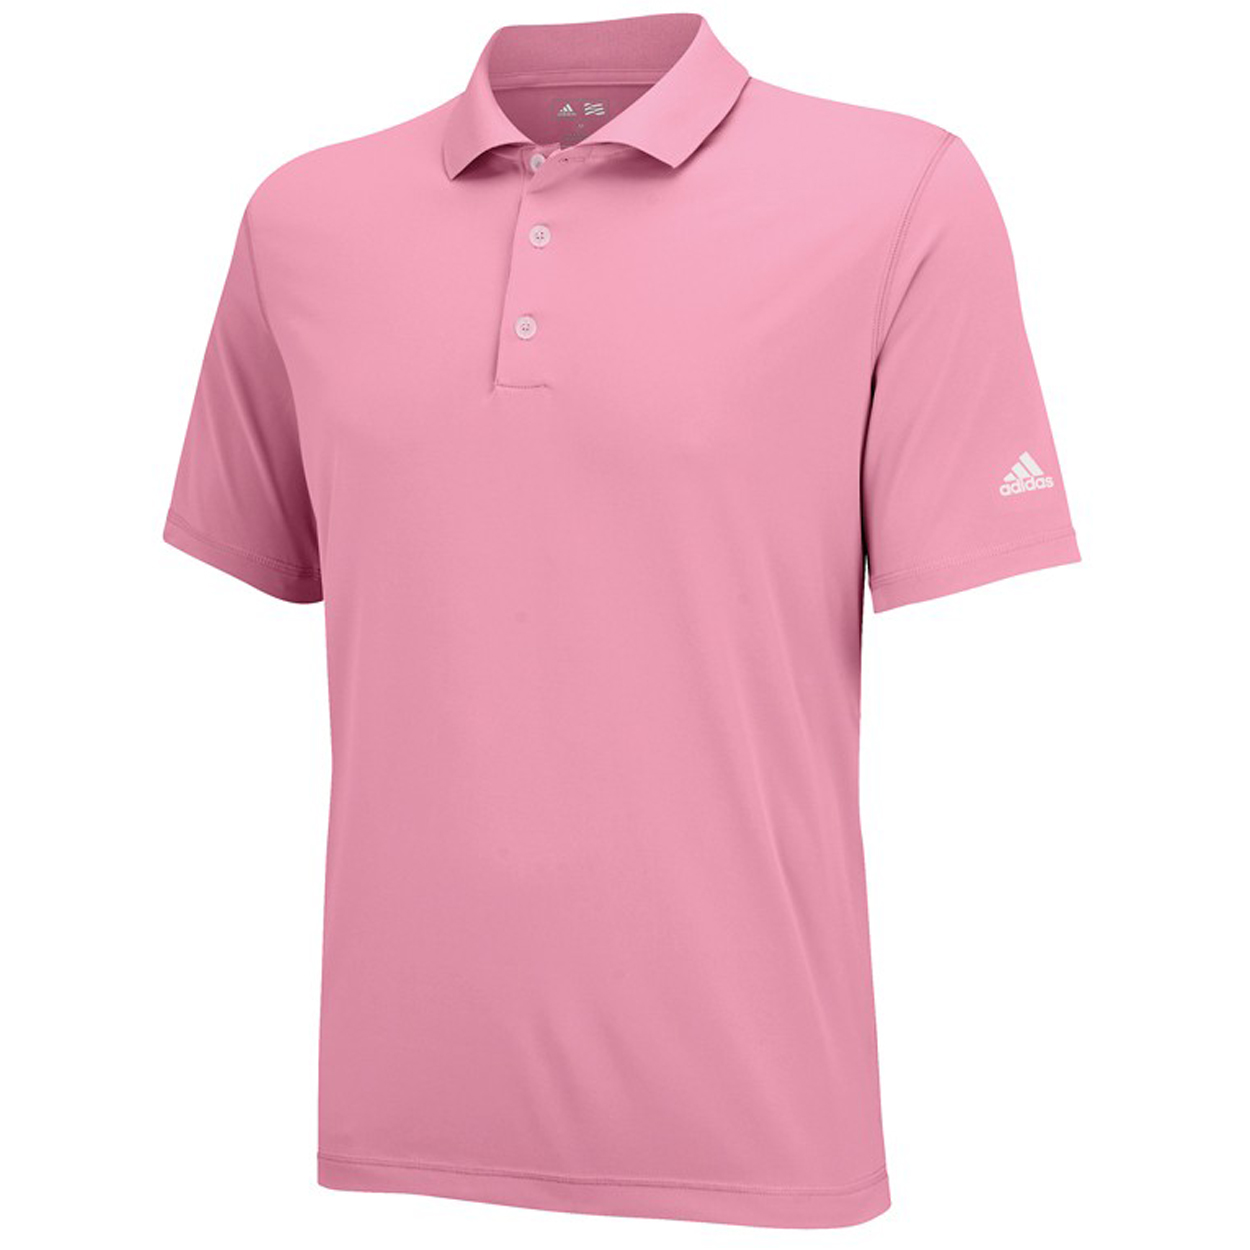 Adidas golf men 39 s puremotion solid jersey polo shirt ebay for Polo golf shirts for men